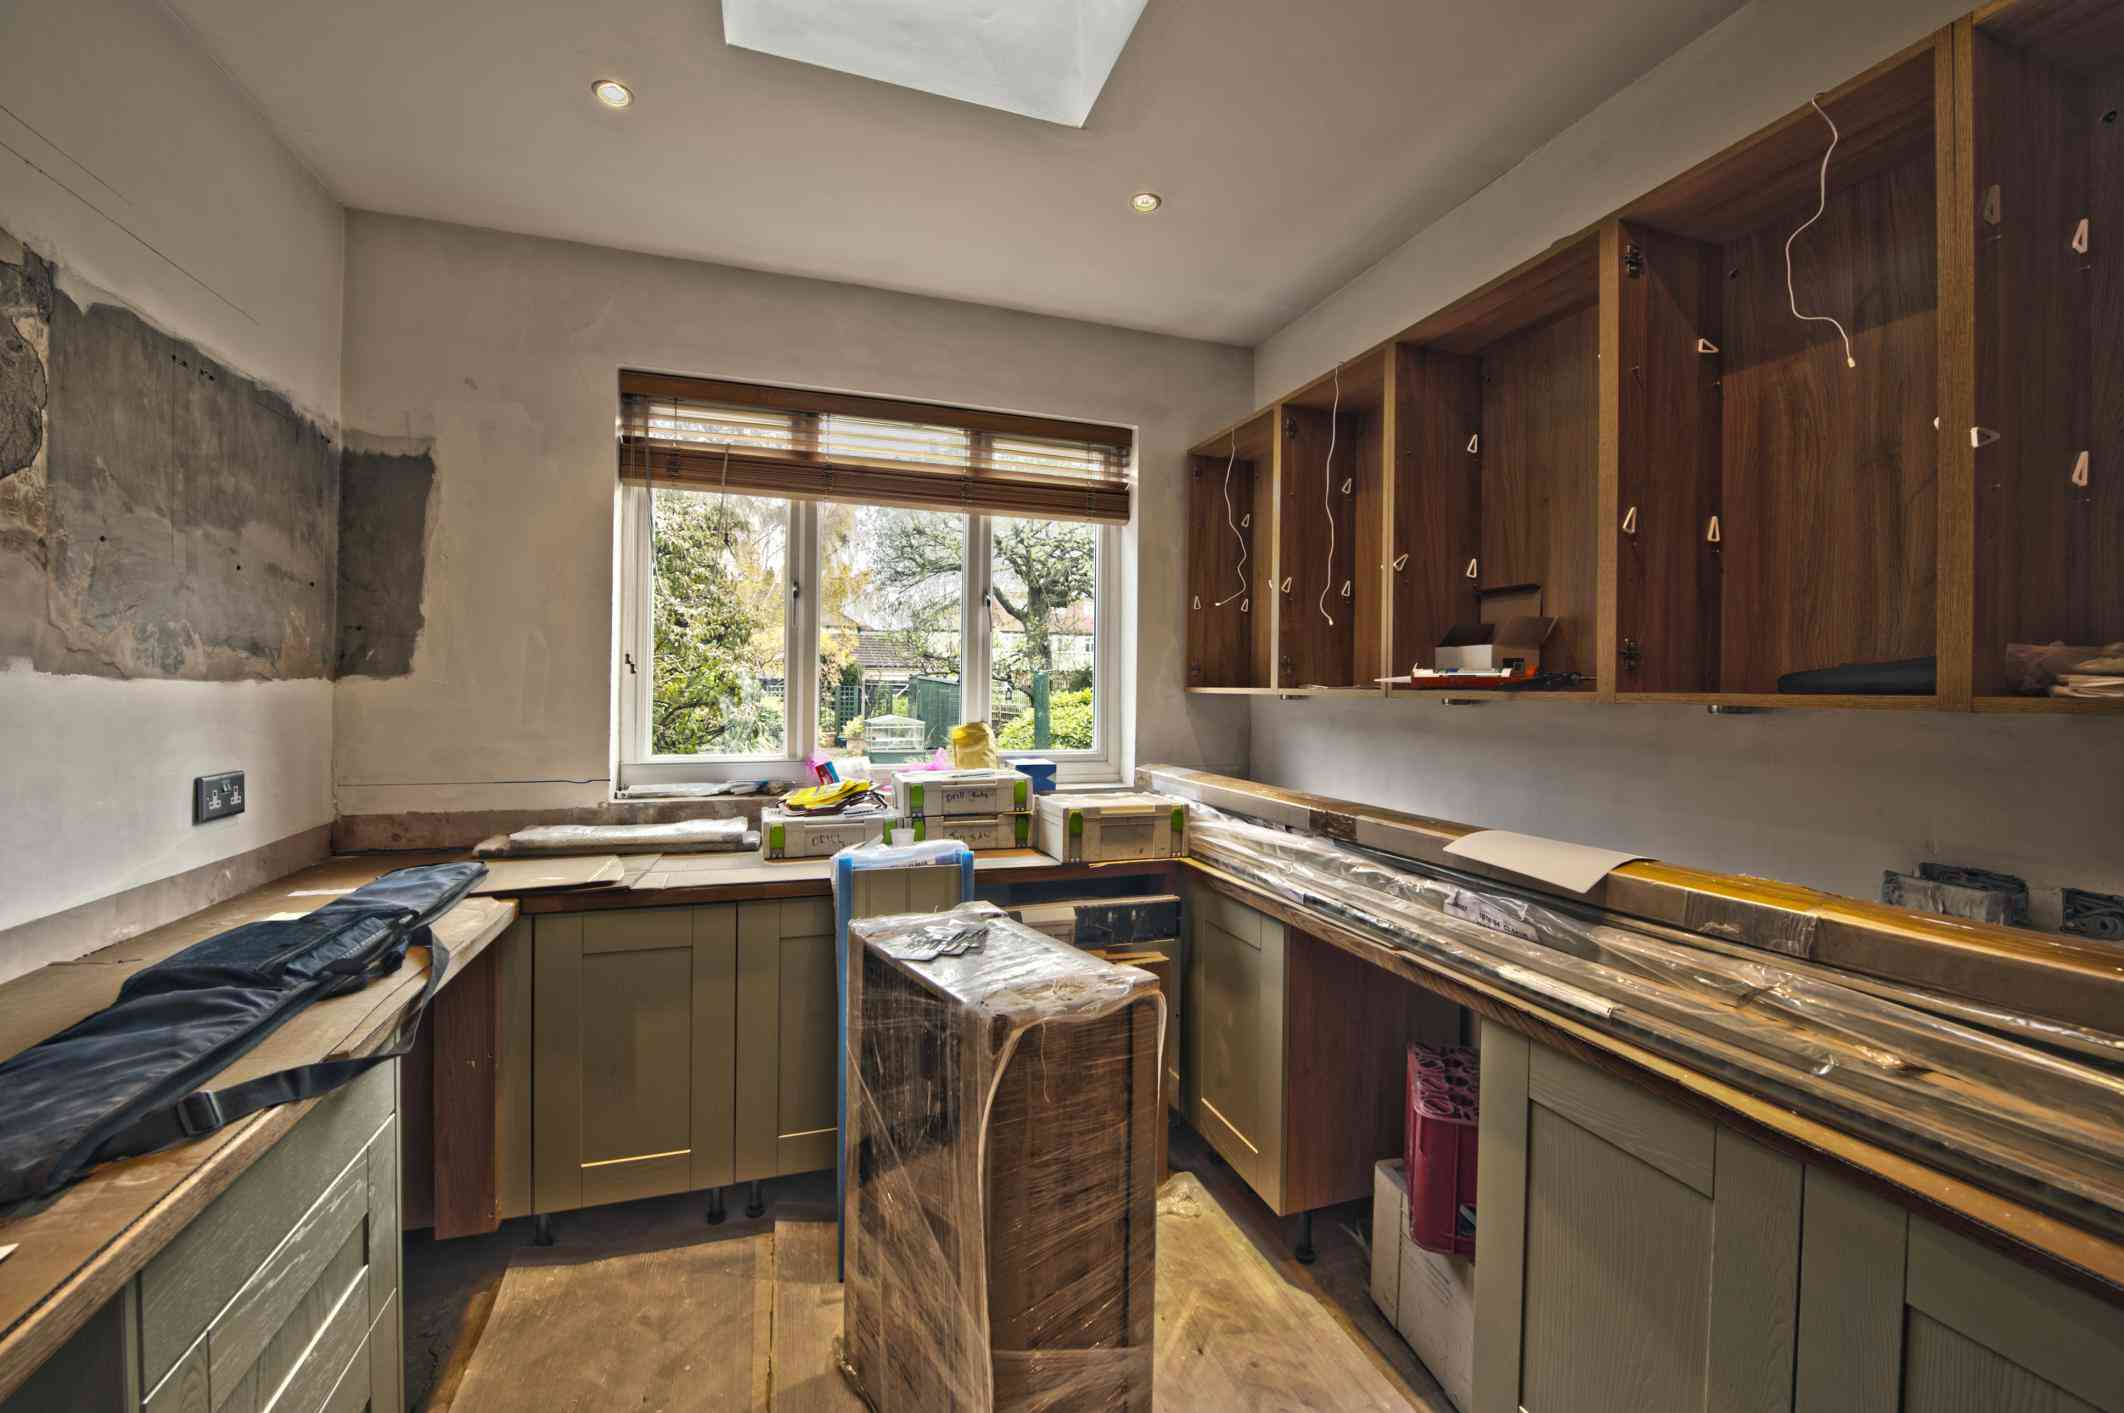 Interior domestic kitchen installation